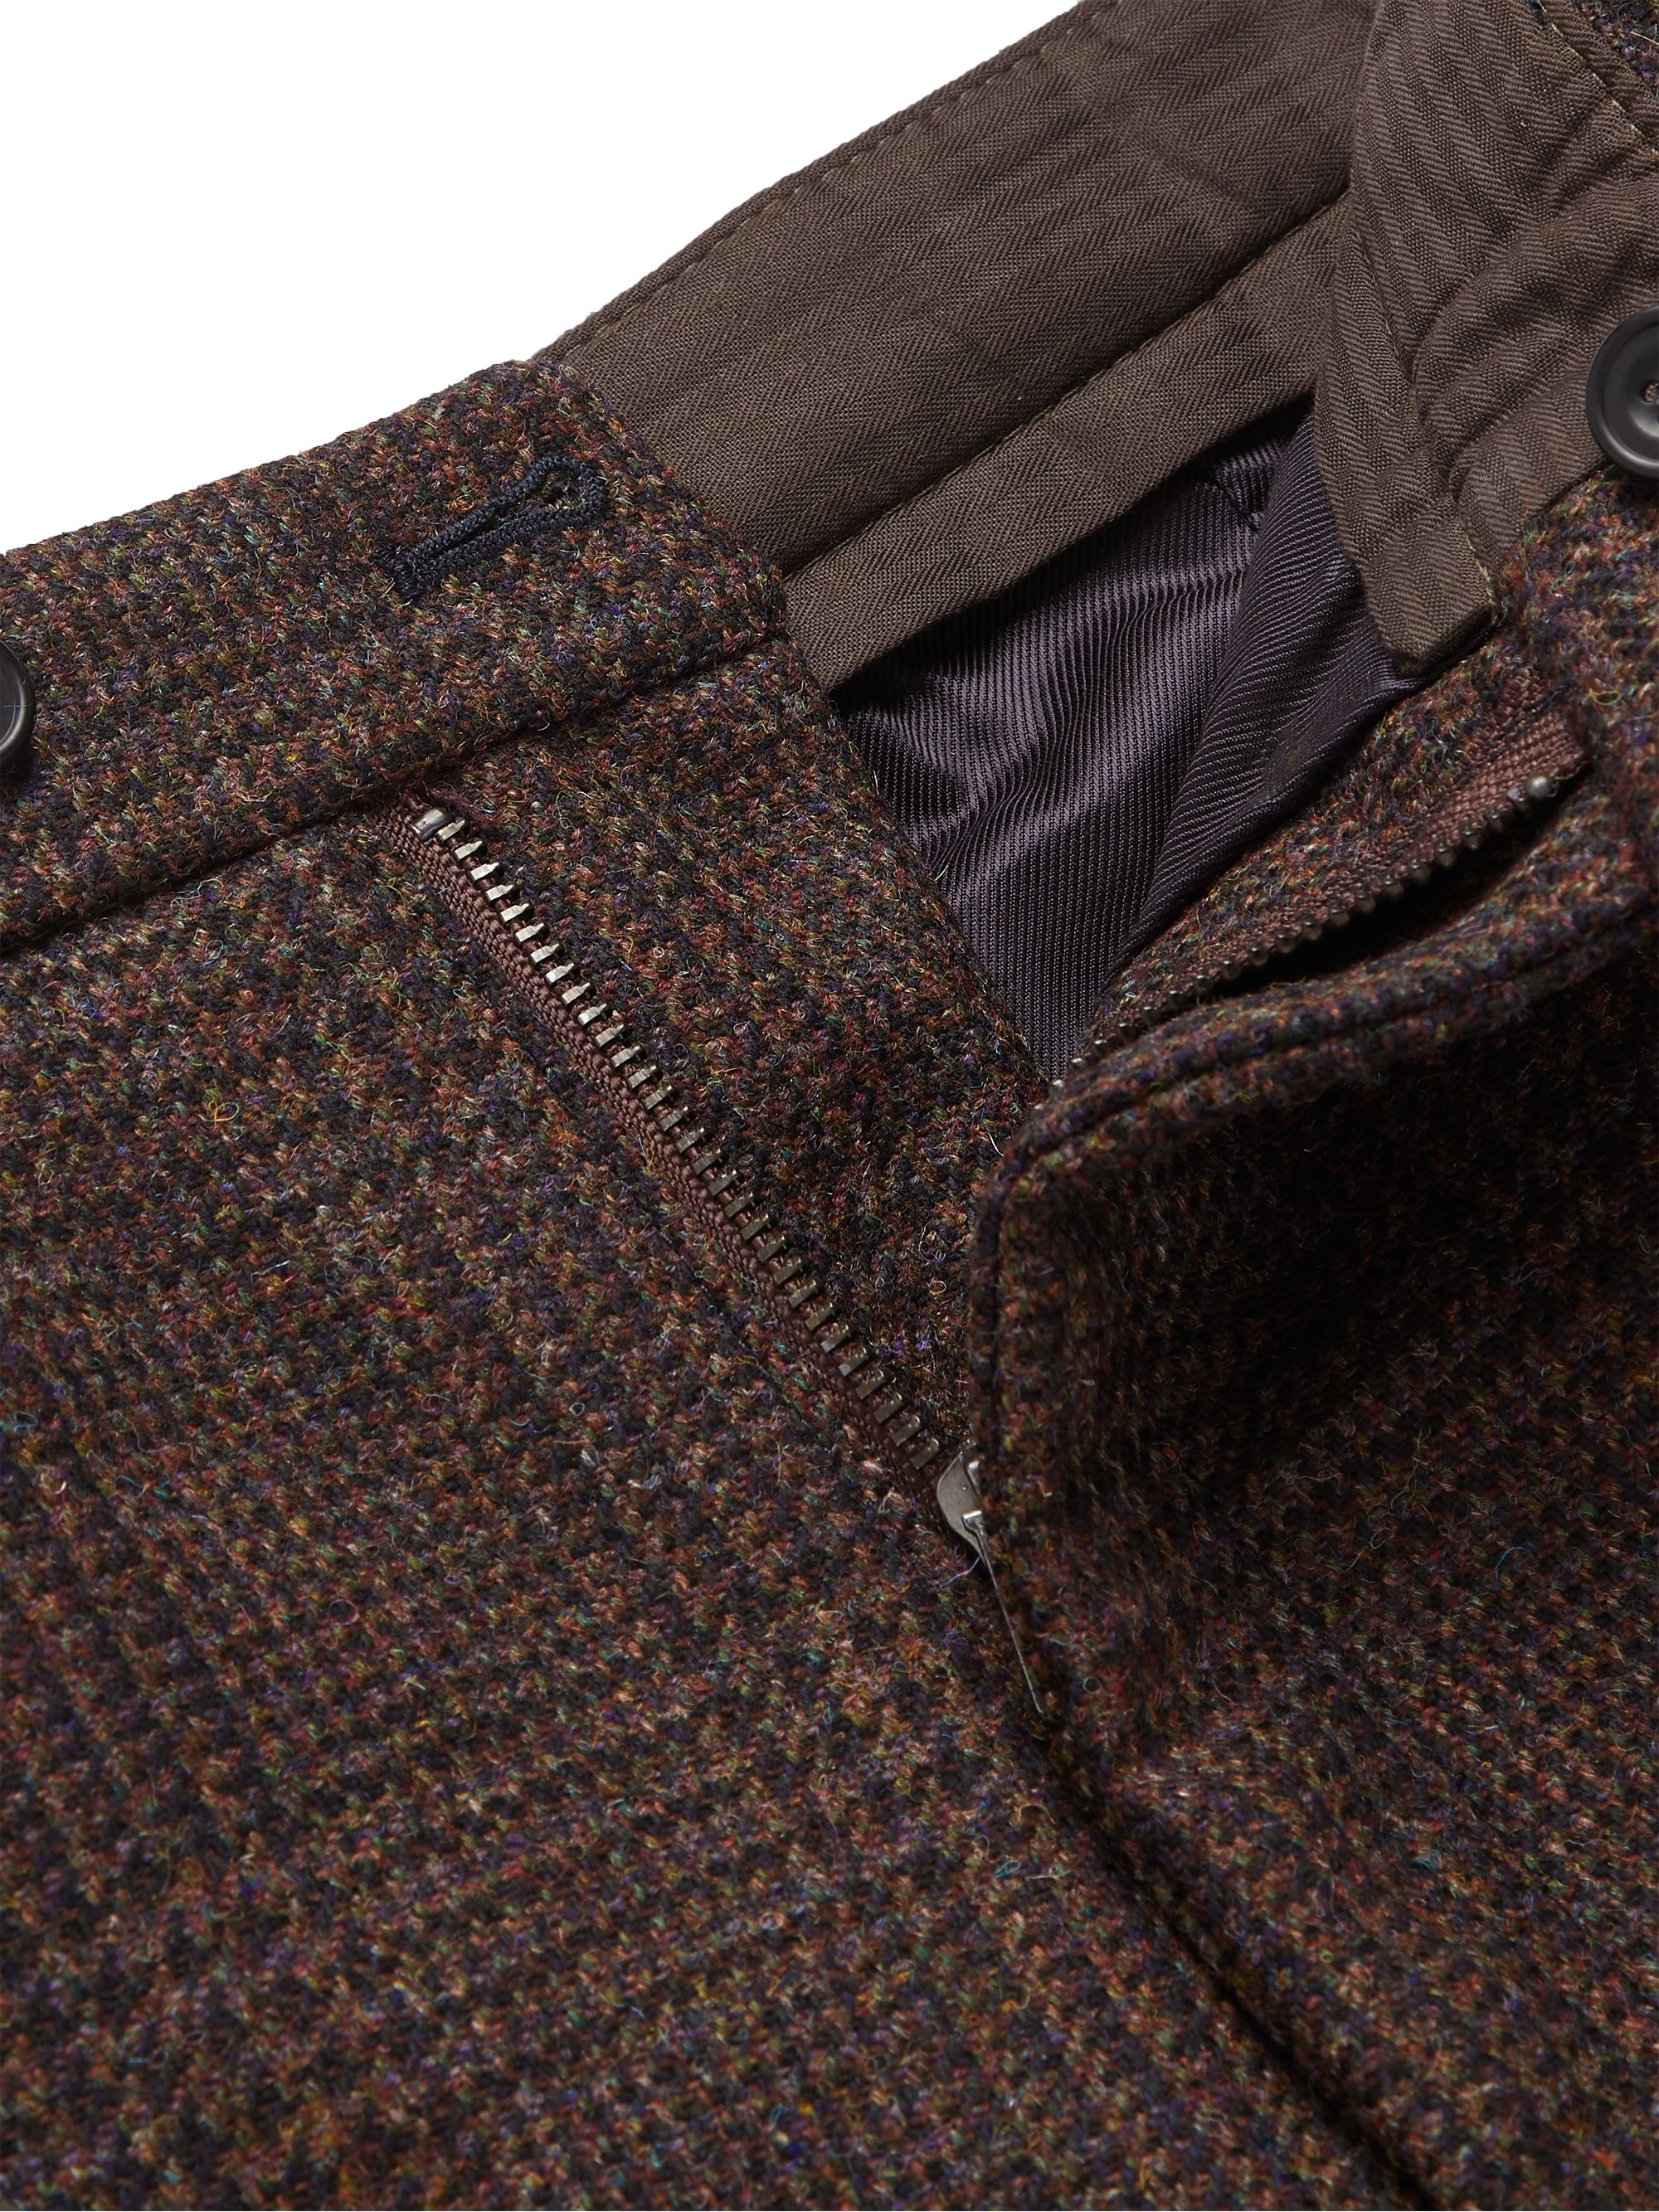 KINGSMAN Oxford Cropped Tapered Wool-Tweed Suit Trousers